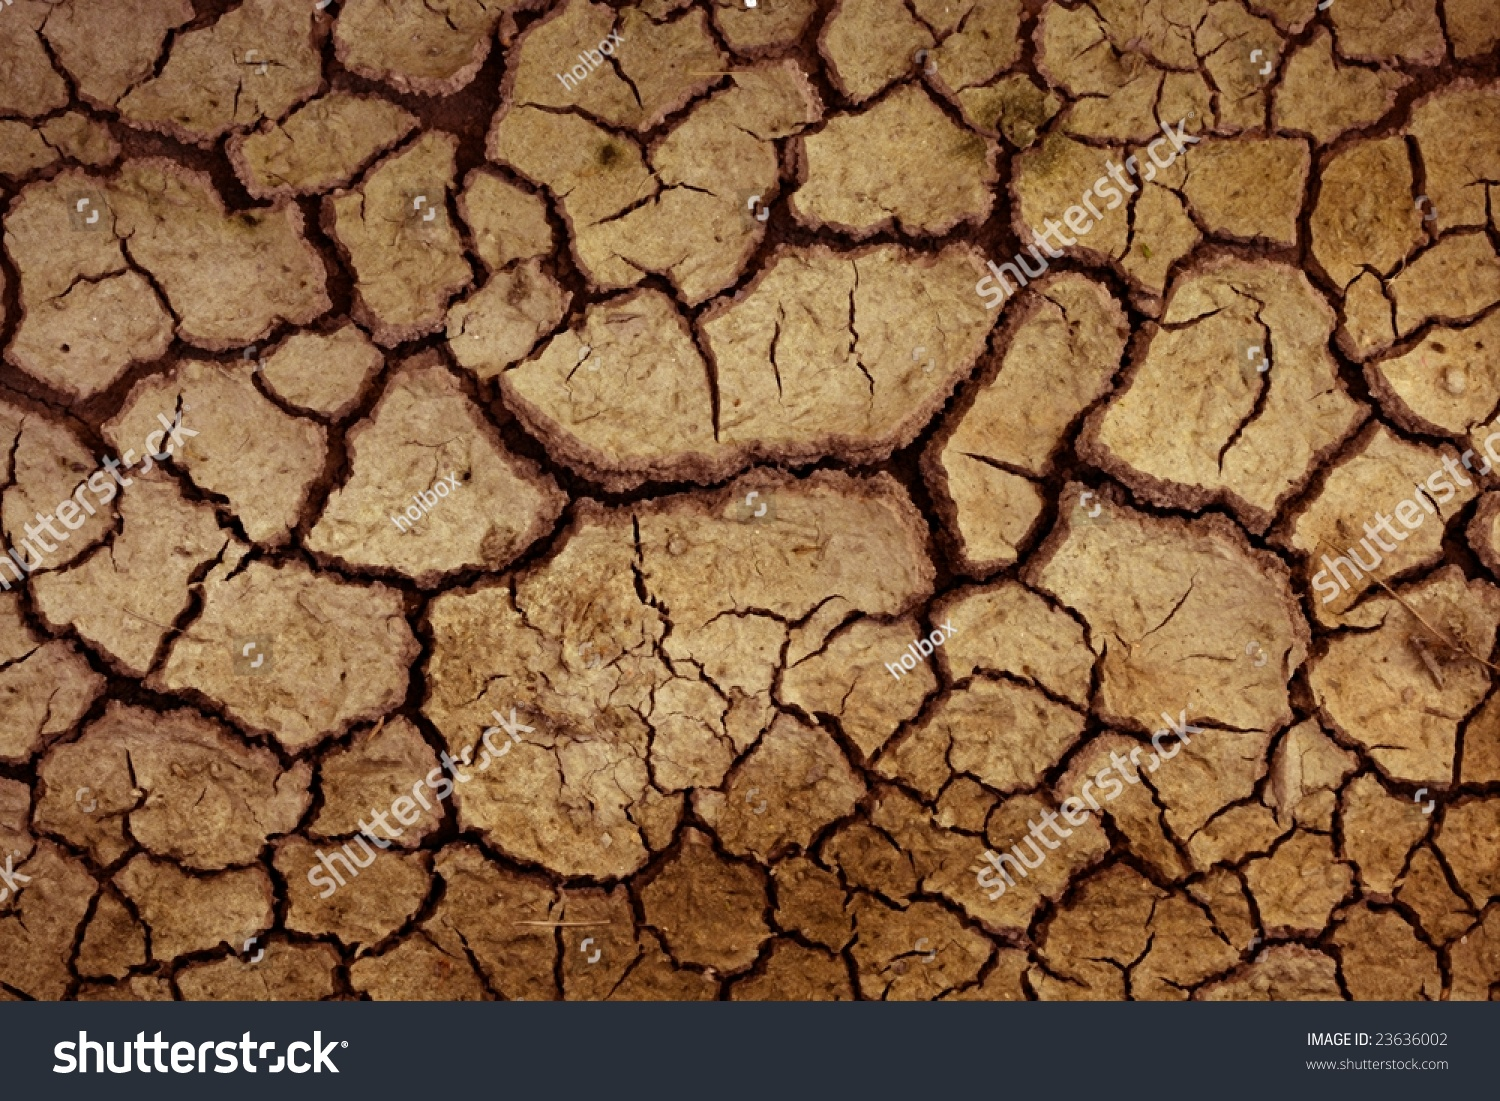 Dry red clay soil texture natural stock photo 23636002 shutterstock dry red clay soil texture natural floor background sciox Images